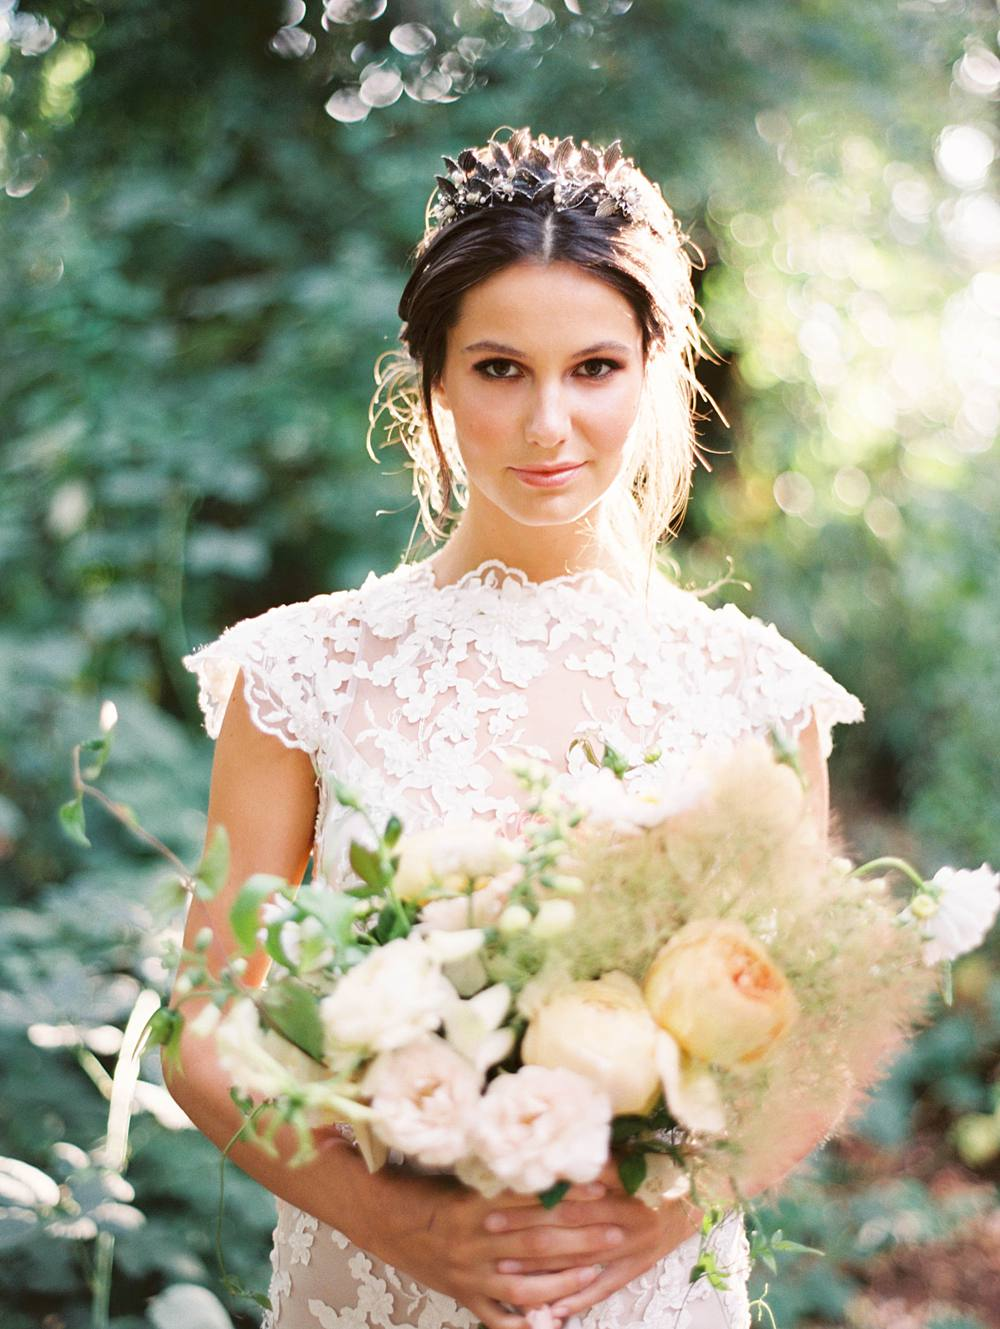 Gorgeous summer bride backlit by evening sun in a forest, holding a beautiful white and blush floral bouquet.